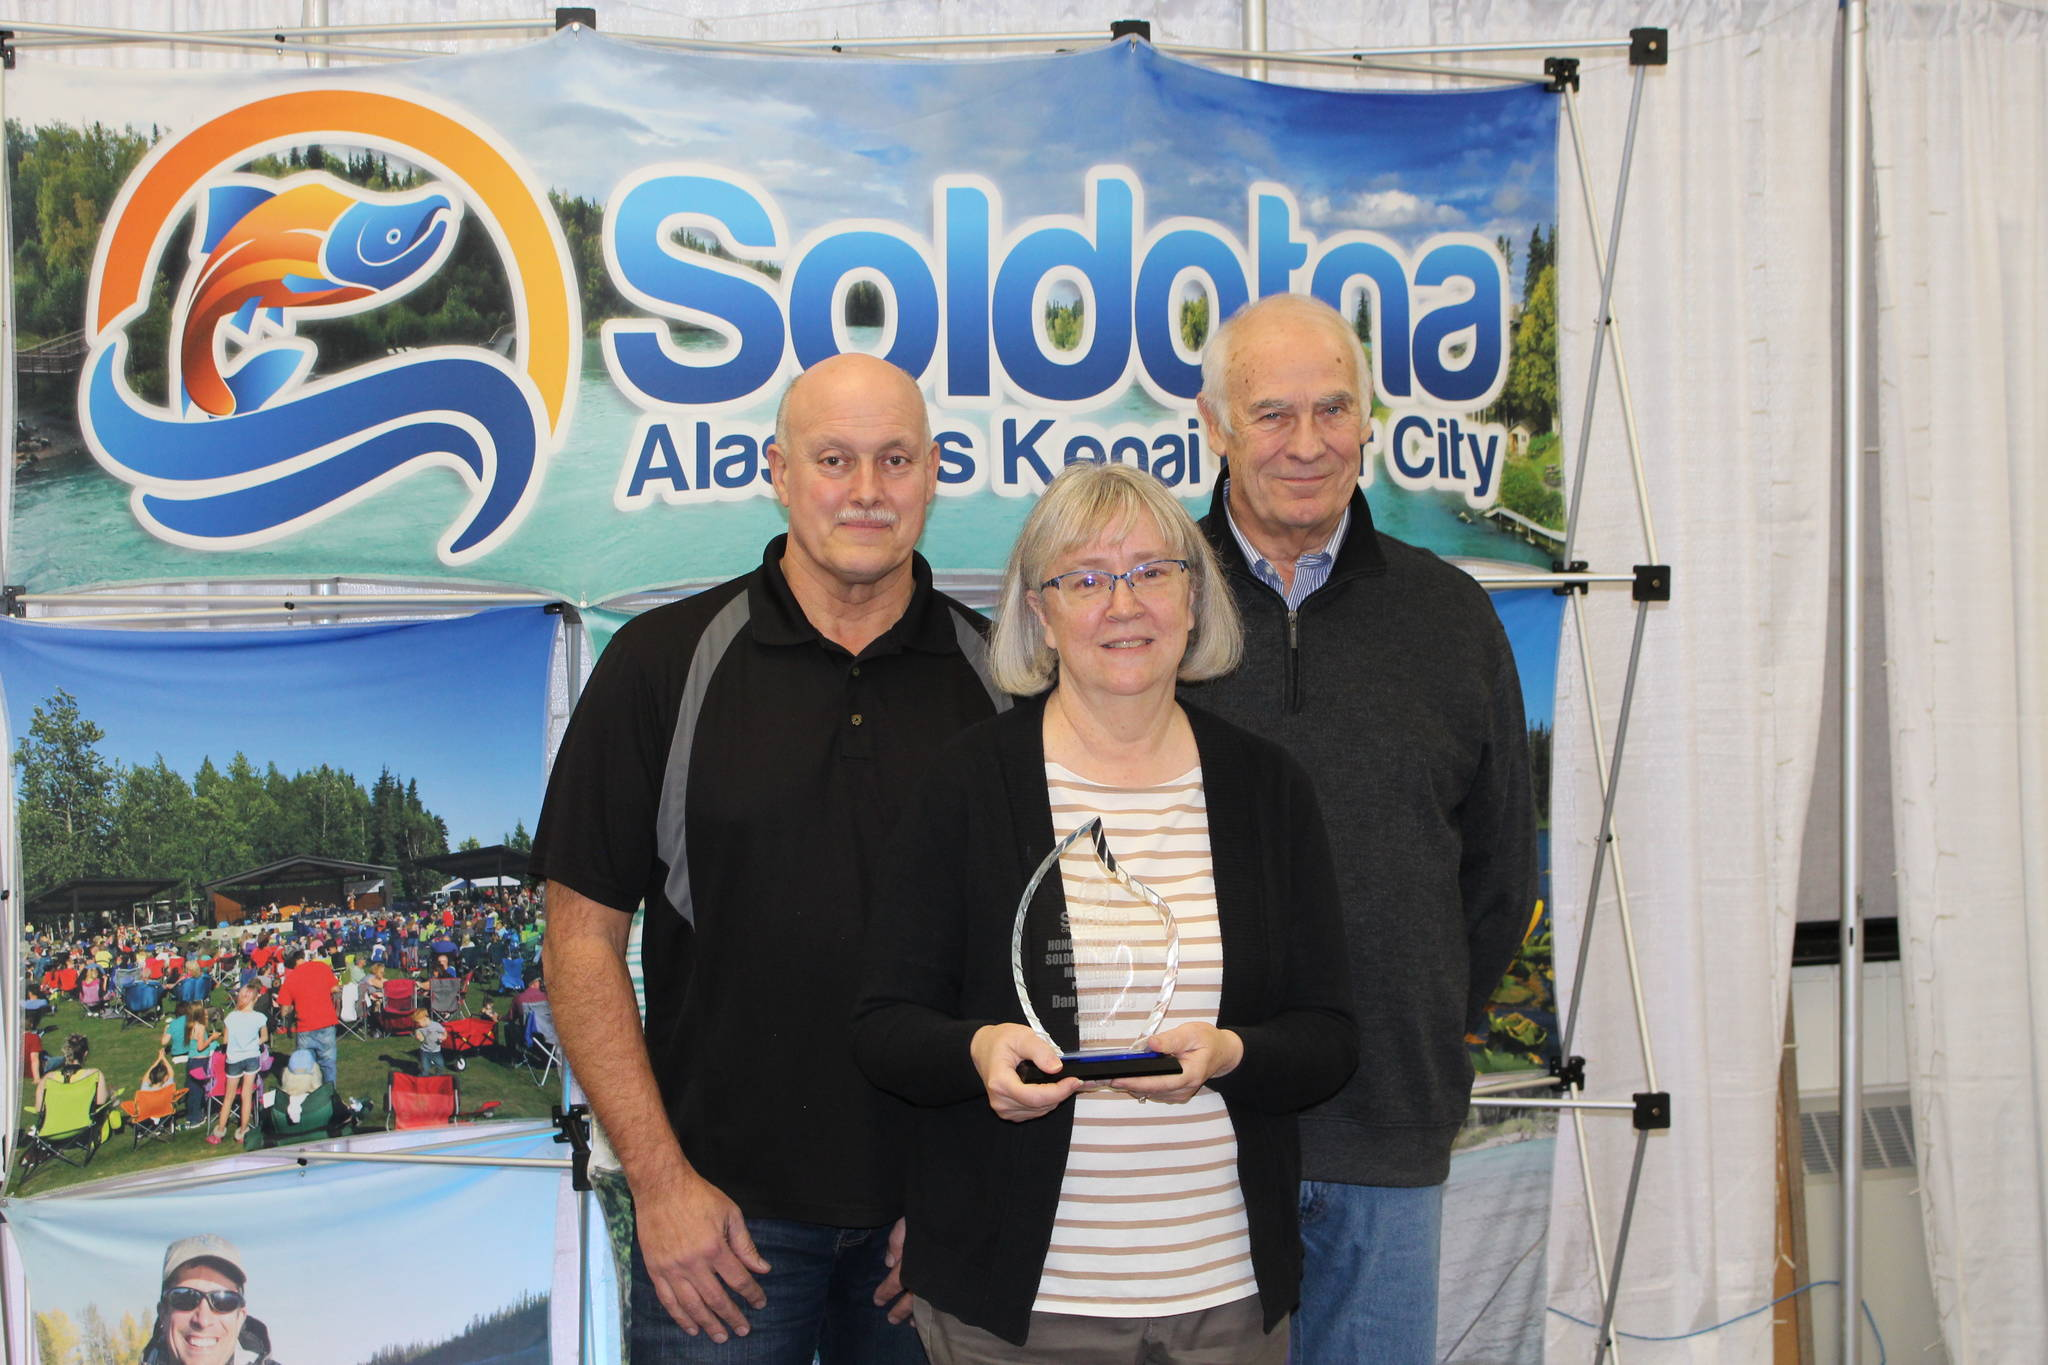 Dan Gensel, Kathy Gensel and Chamber President Jim Stogsdill smile for the camera at the Soldotna Chamber of Commerce Awards Luncheon at the Soldotna Regional Sports Complex on Dec. 11, 2019. (Photo by Brian Mazurek/Peninsula Clarion)